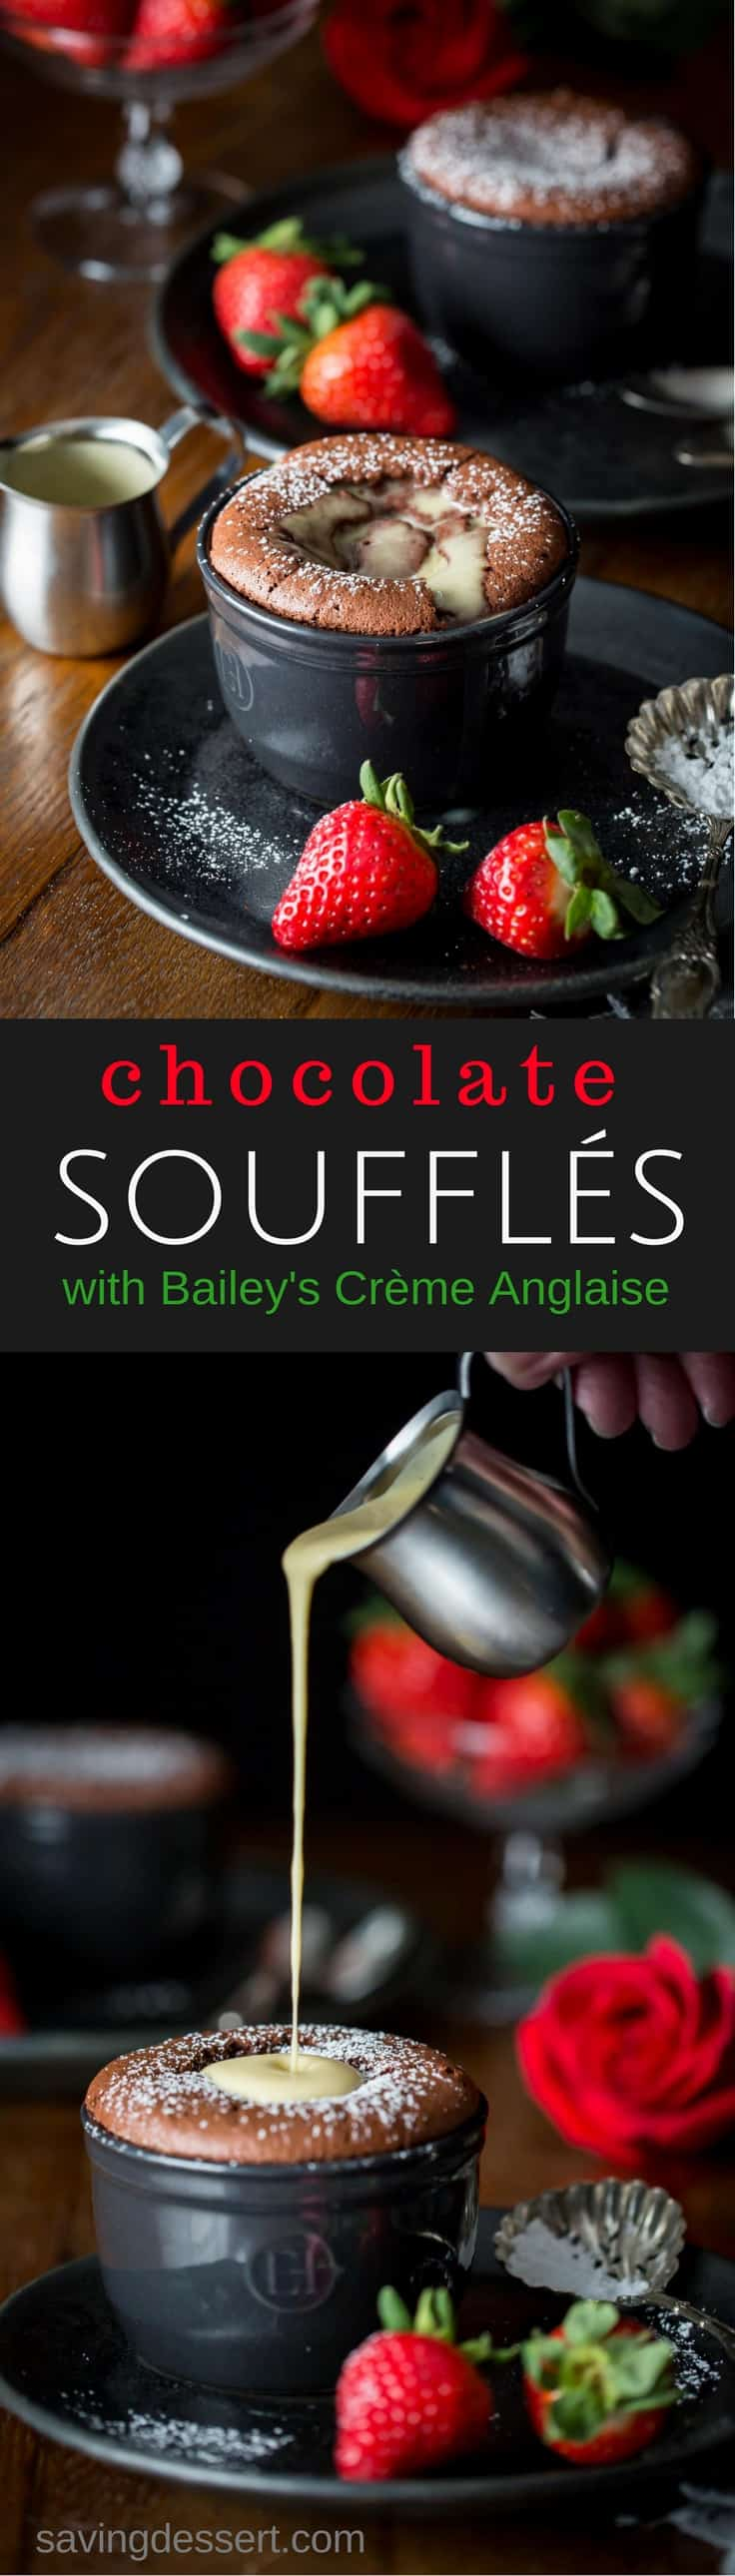 Chocolate Soufflé with Bailey's Crème Anglaise - Light as air, and melt in your mouth creamy, our soufflés taste luxurious and couldn't be easier to make! #savingroomfordessert #souffle #chocolatesouffle #chocolatedessert #baking #dessert #romantic #valentinesday